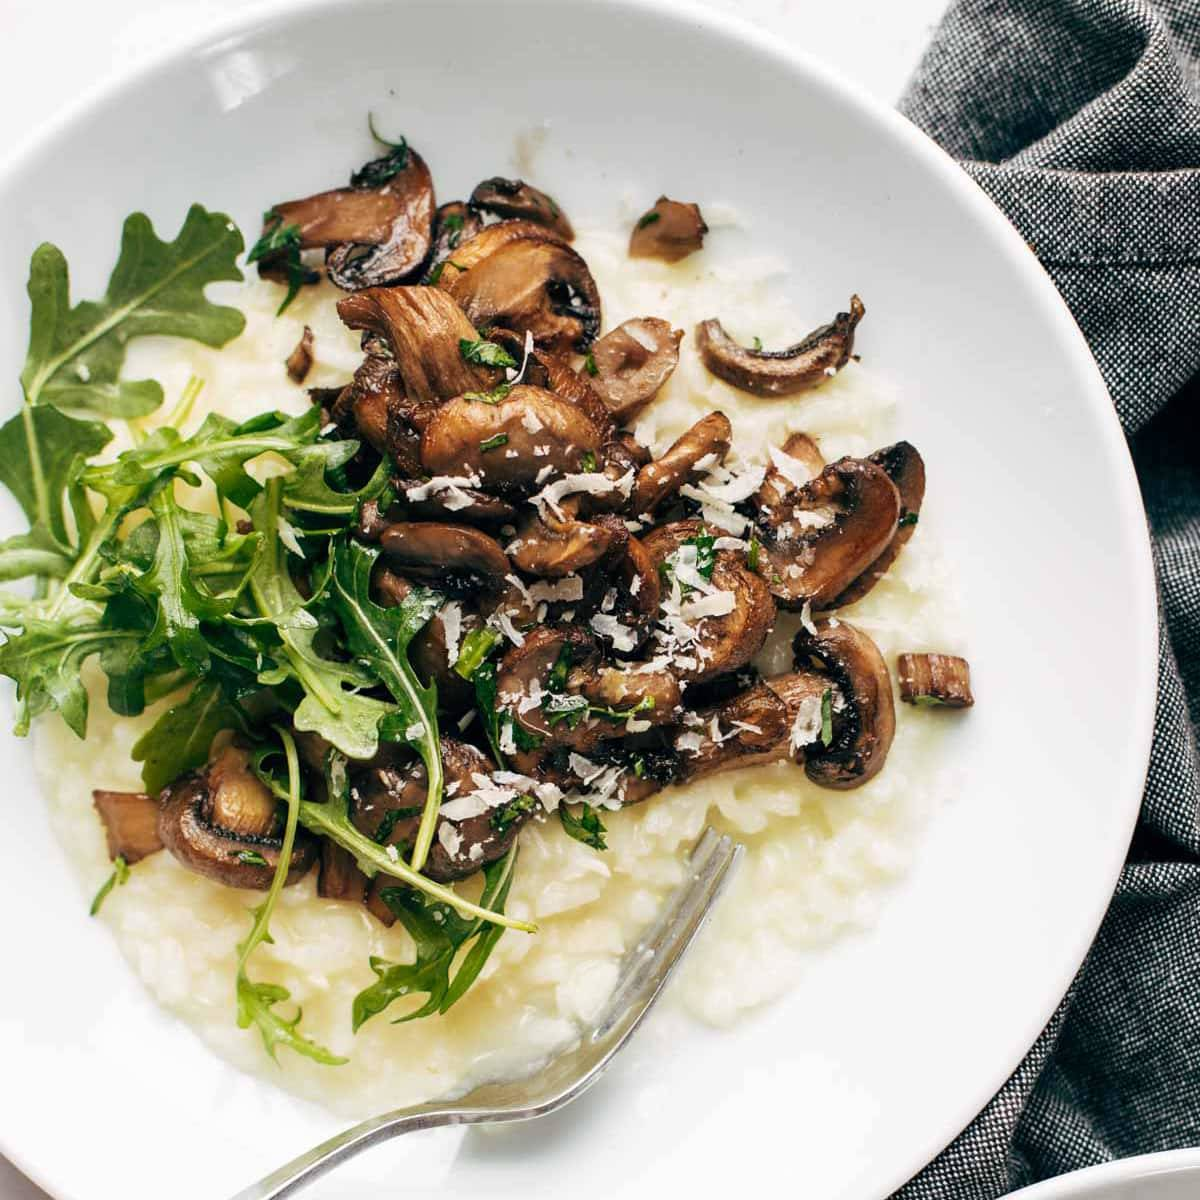 Oven risotto in a bowl with mushrooms.